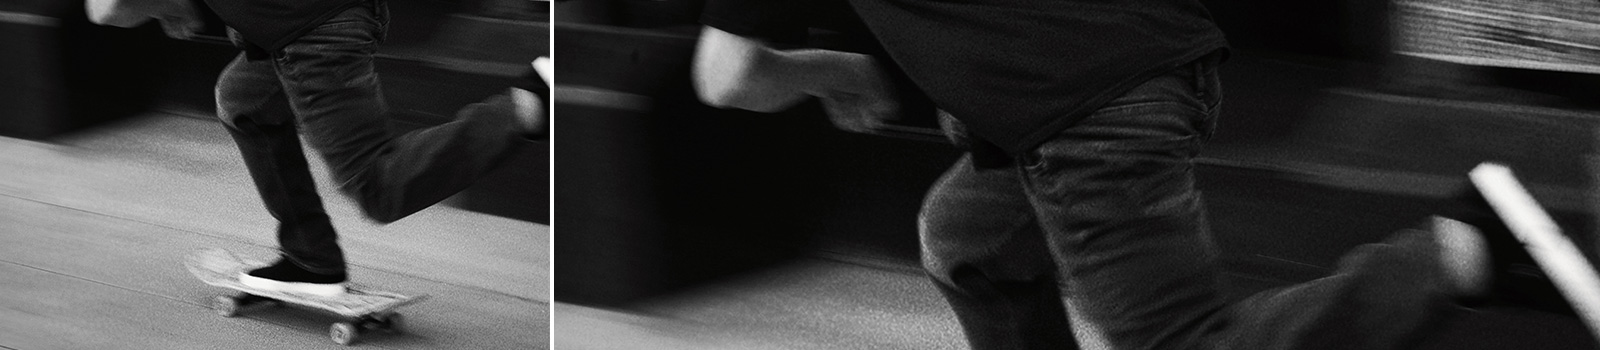 Kids Hoodies & Boys Sweatshirts from DC Shoes